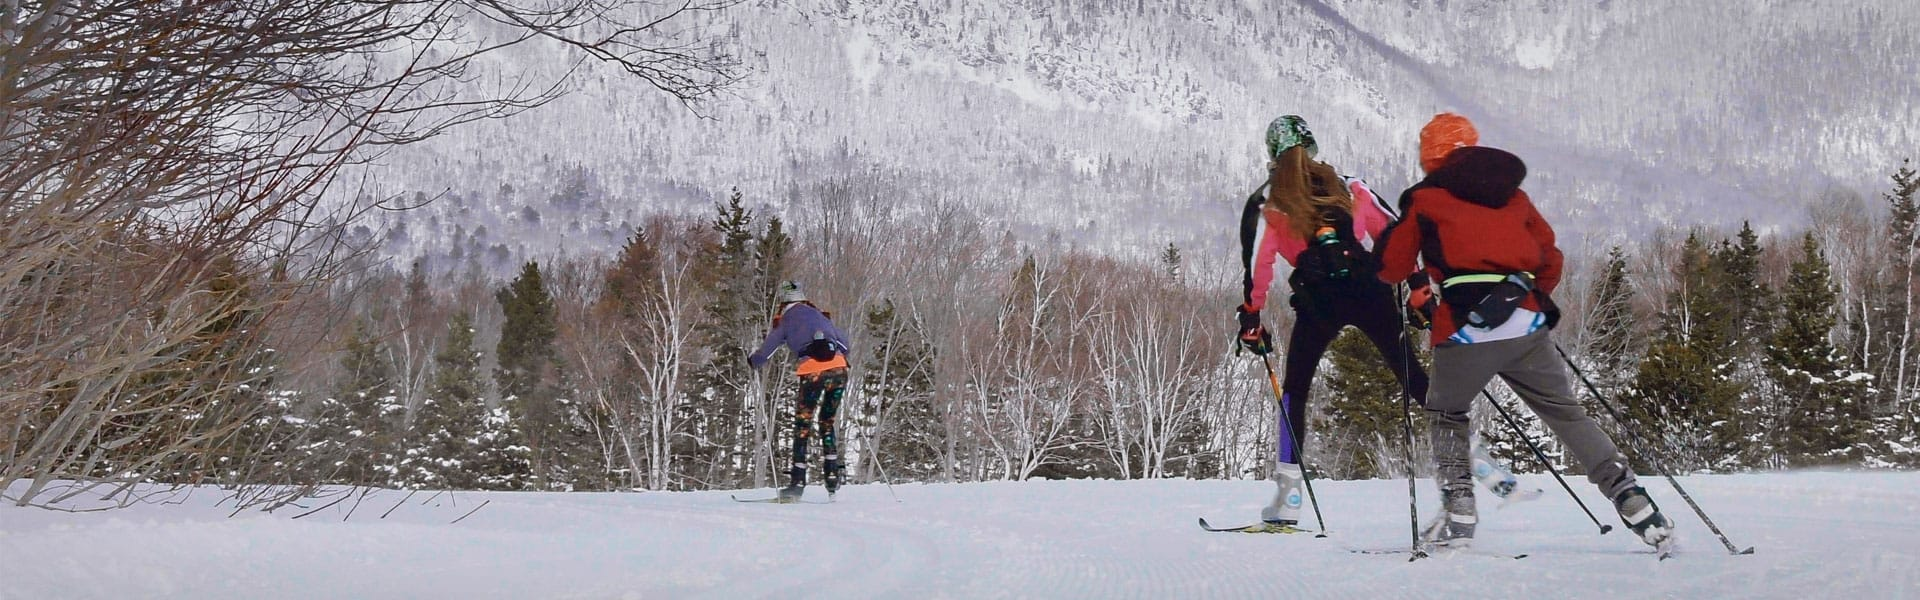 Three cross country skiers make their way towards a snowy mountain